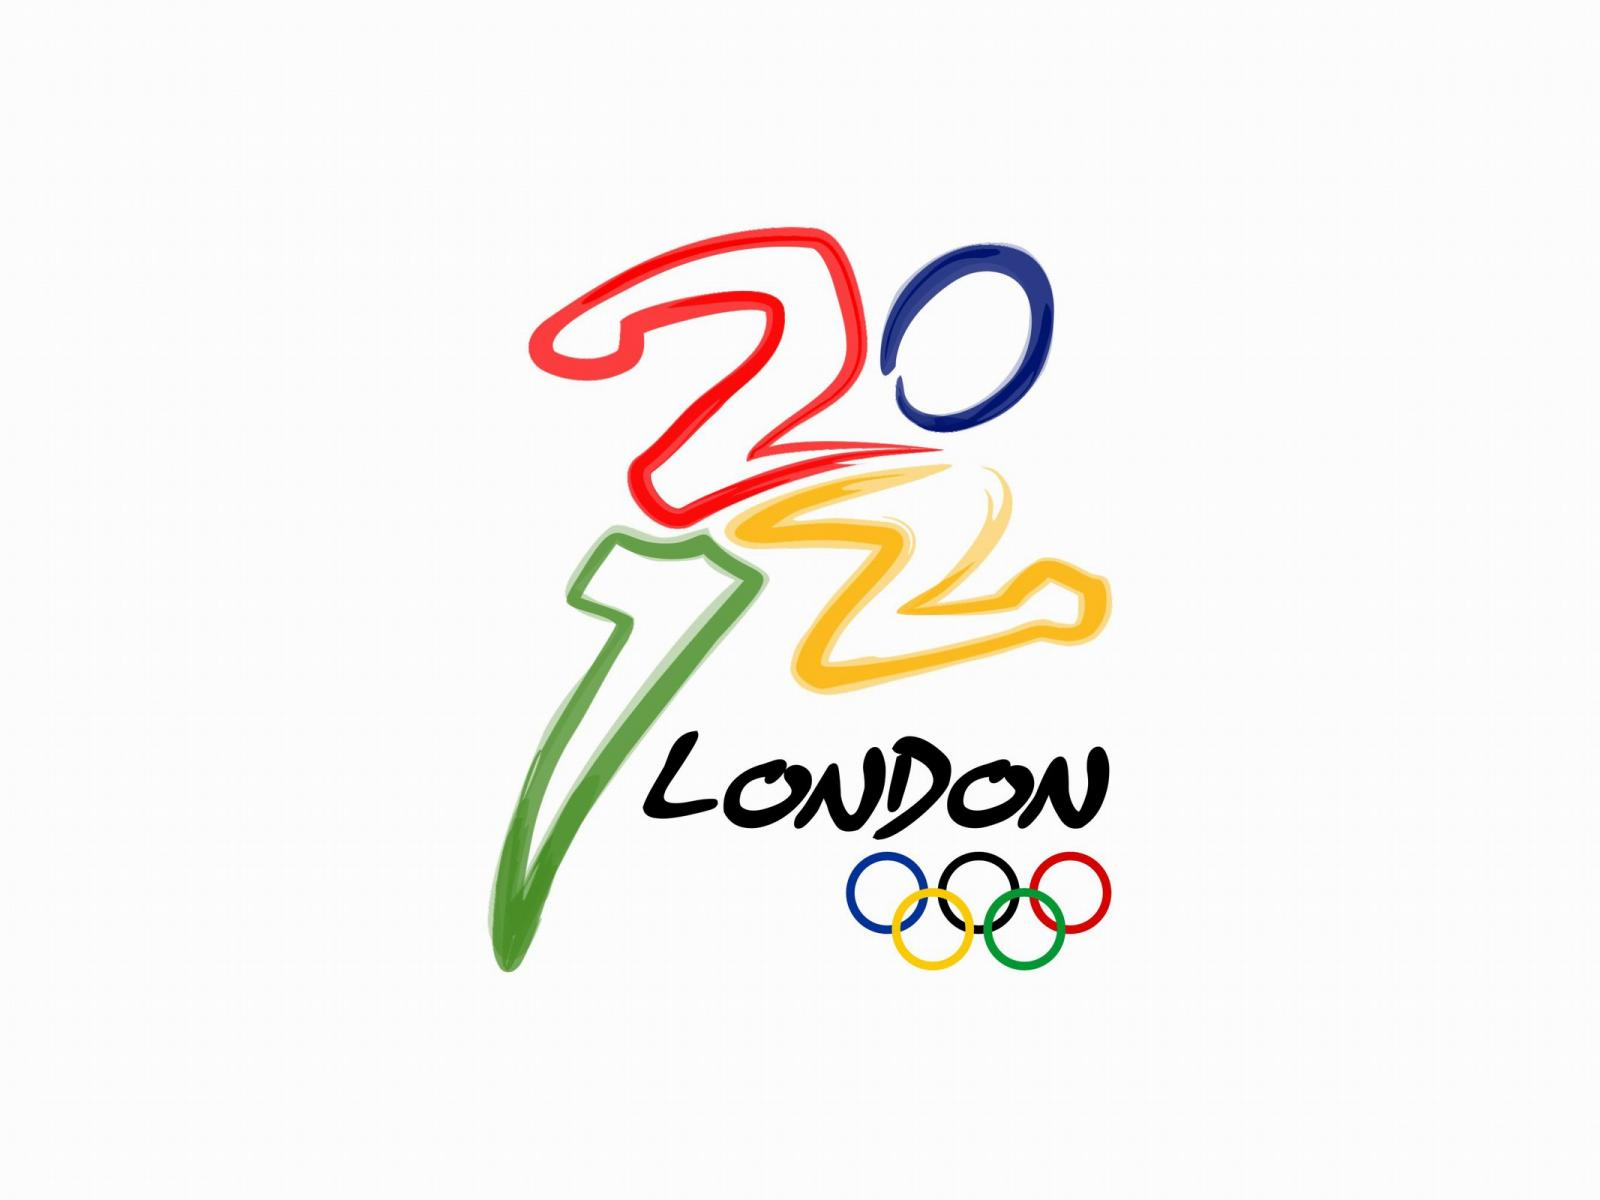 London 2012 – Olympic Rings and Logo